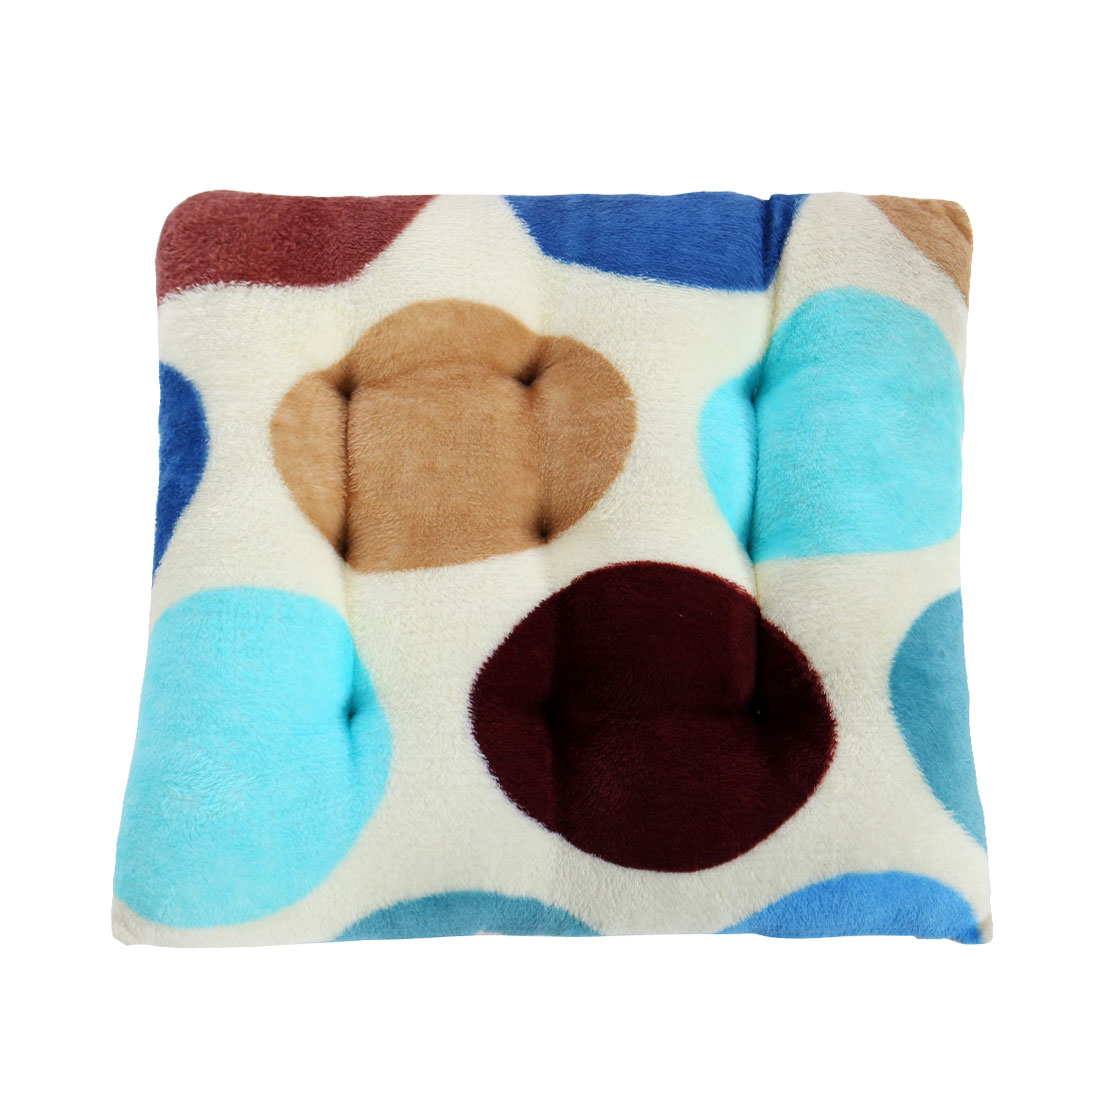 Home Office Flannel Dot Pattern Back Support Seat Chair Pad Cushion 40cm x 40cm